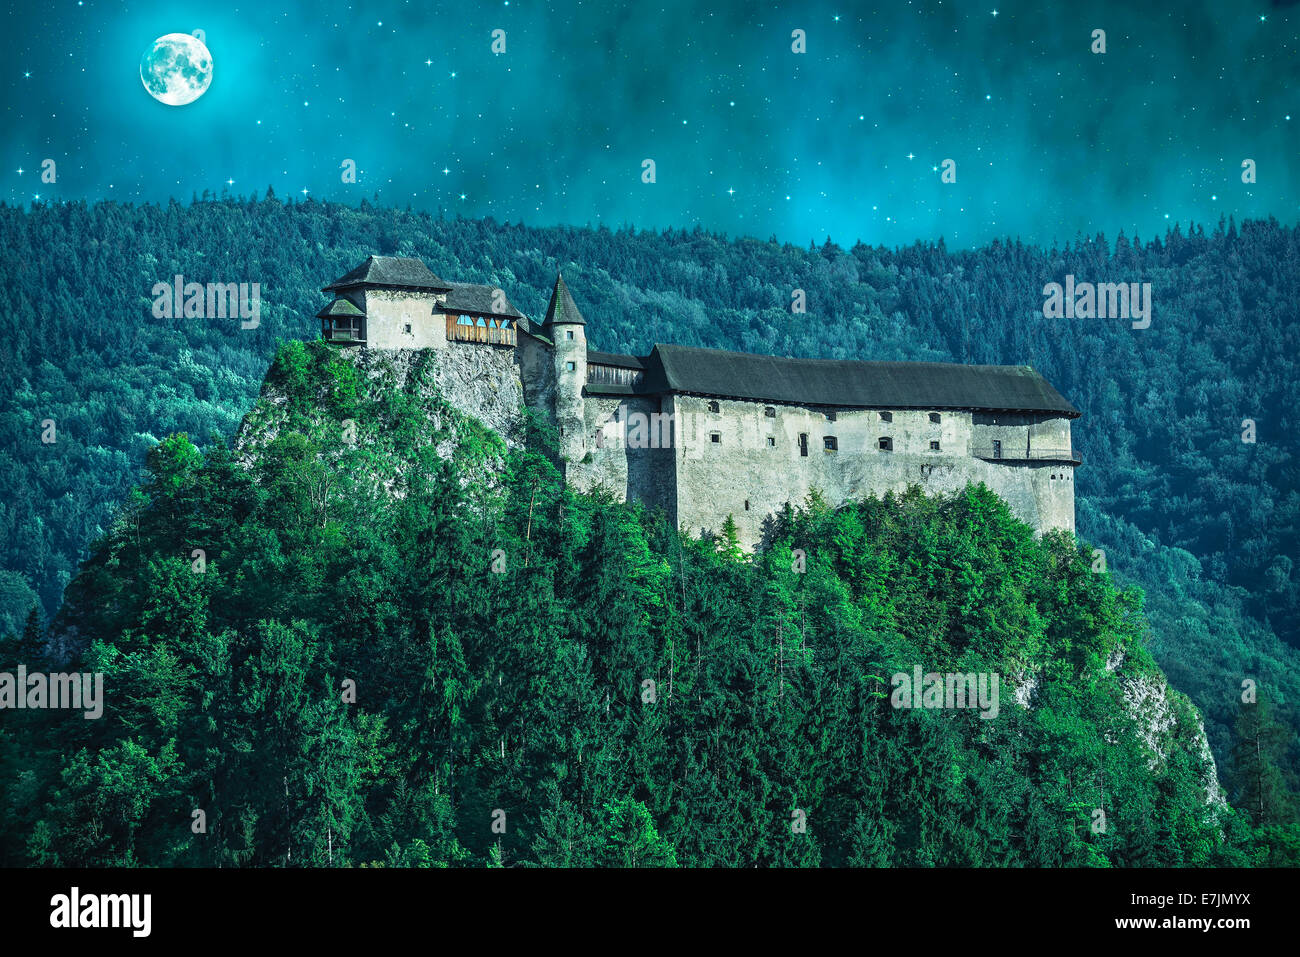 Scary castle in a forest at night with moon Stock Photo